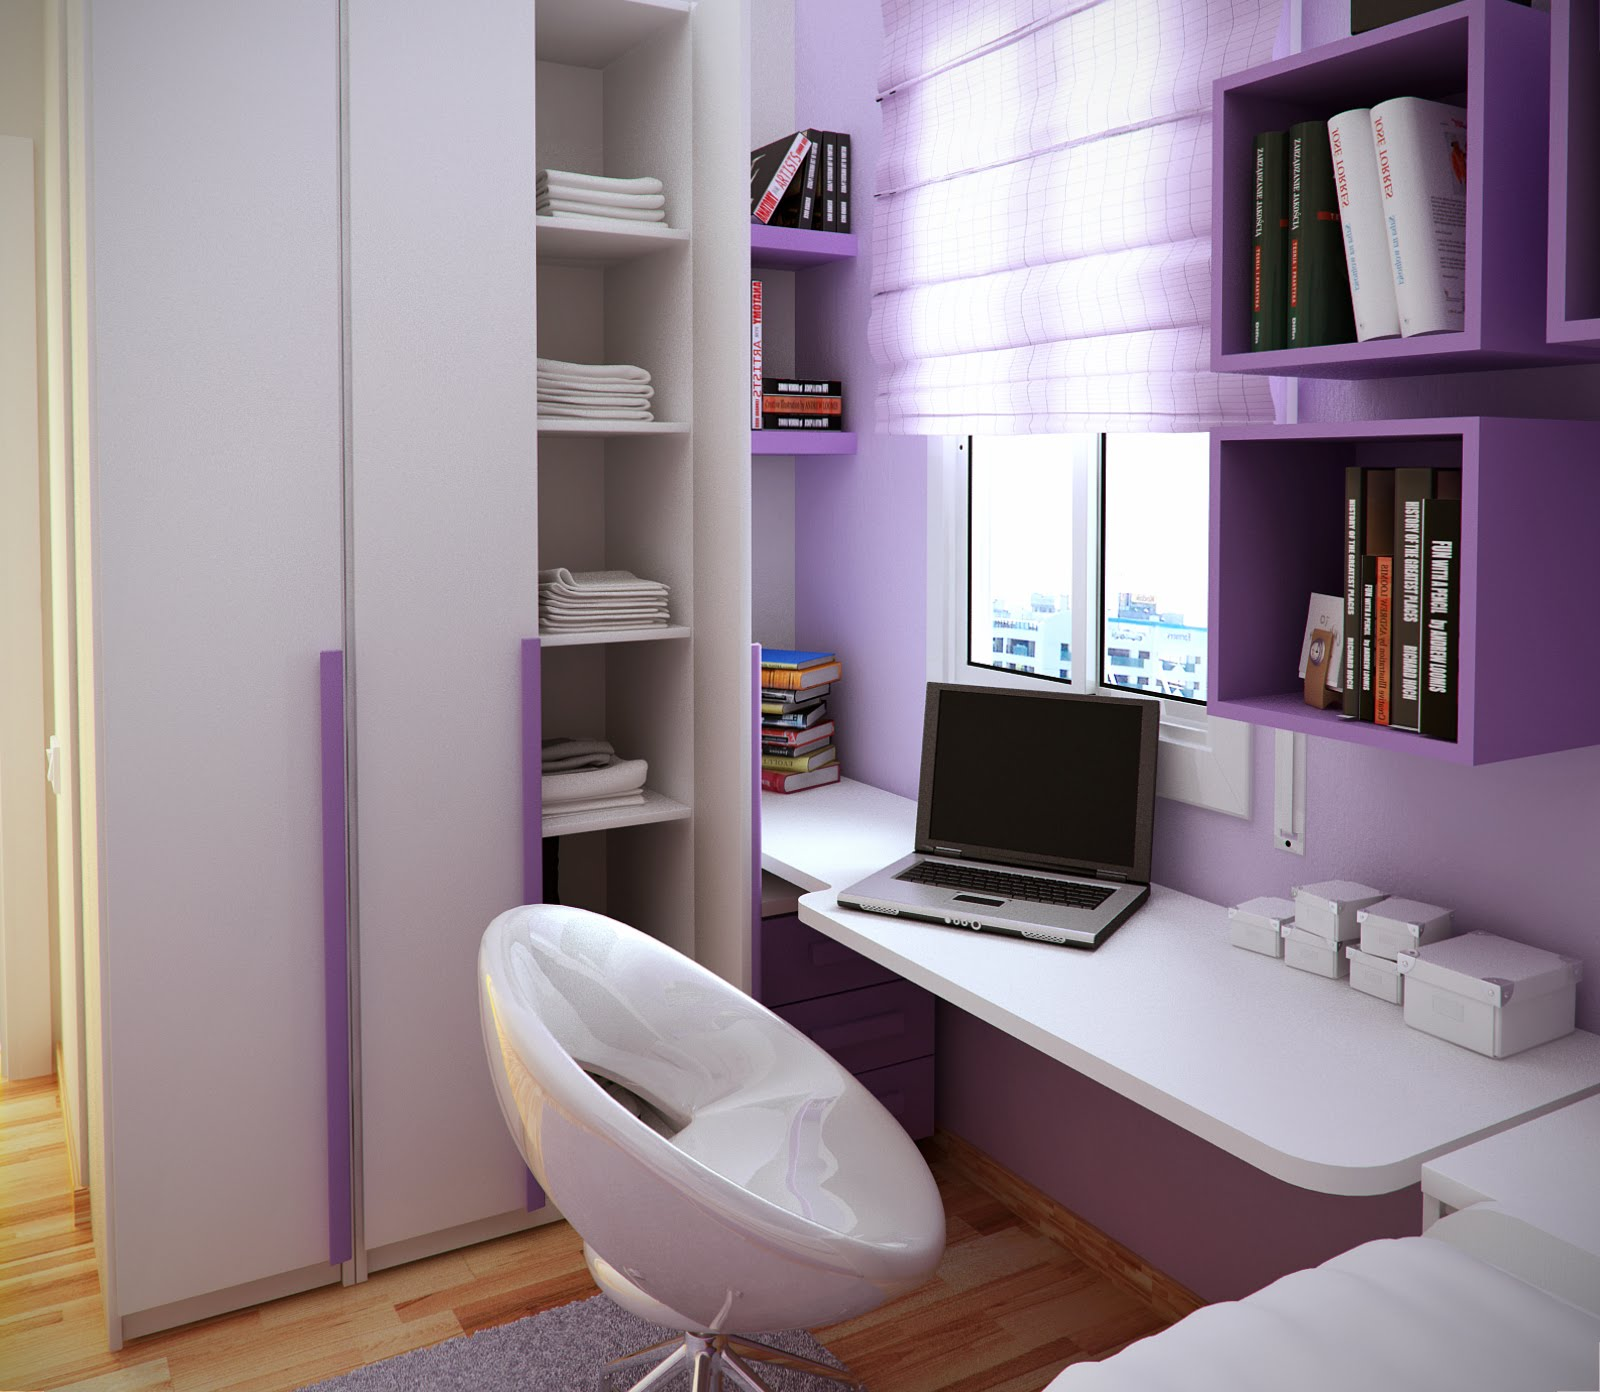 remarkable-tiny-kids-room-design-with-endearing-purple-scheme-study-room-furniture-also-laptop-unit-on-wall-mounted-desk-and-fashionable-white-swivel-chair-on-grey-rug-along-with-bookshelf-decor